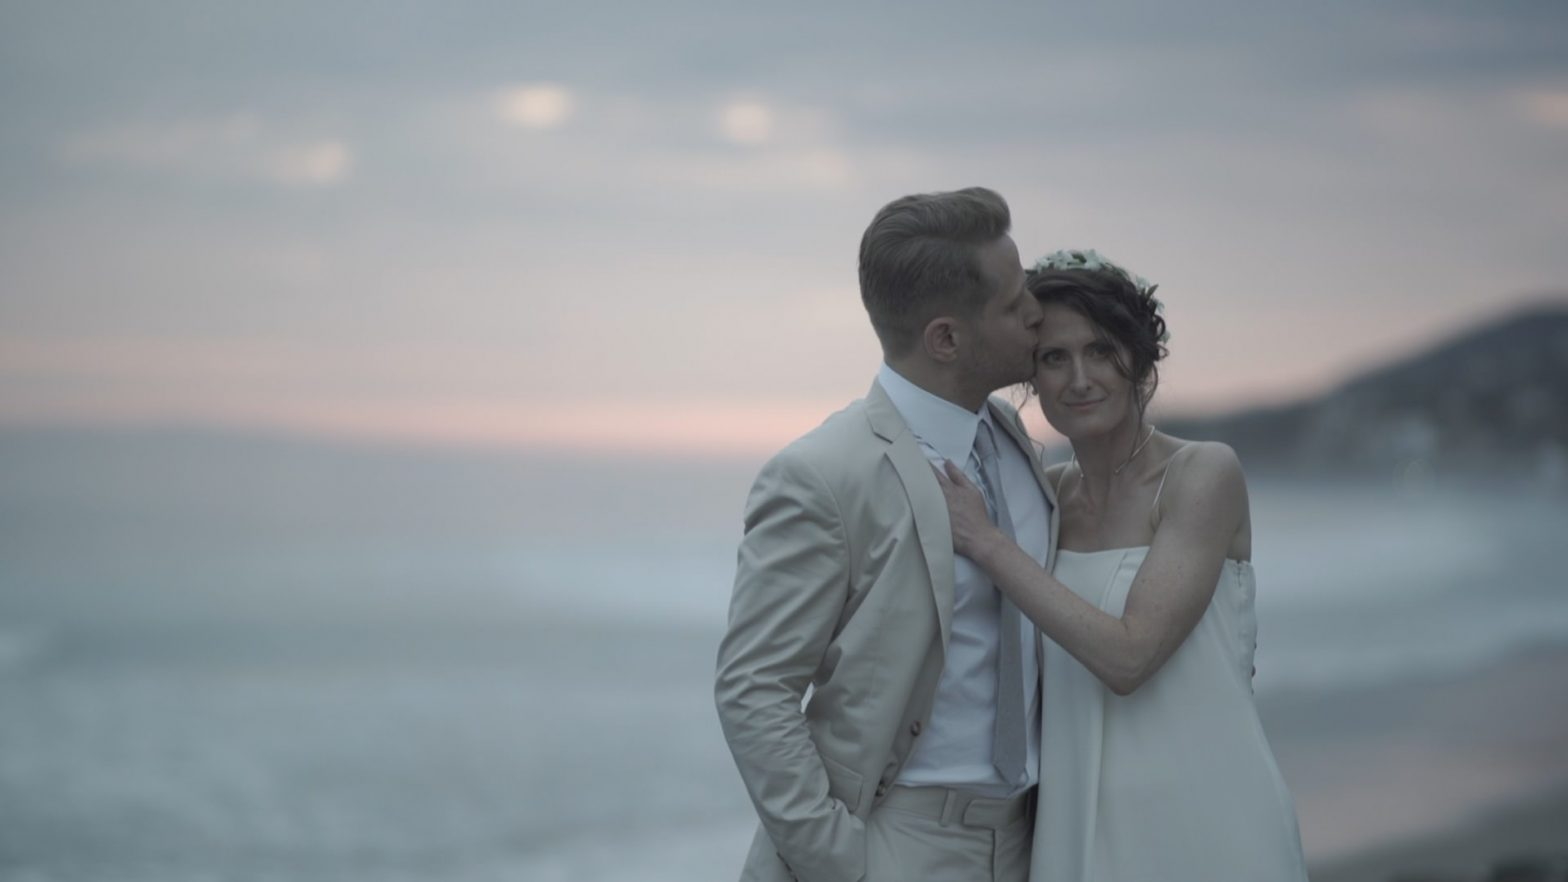 Malibu wedding videographer Philip White capturing a bride and groom on the beach